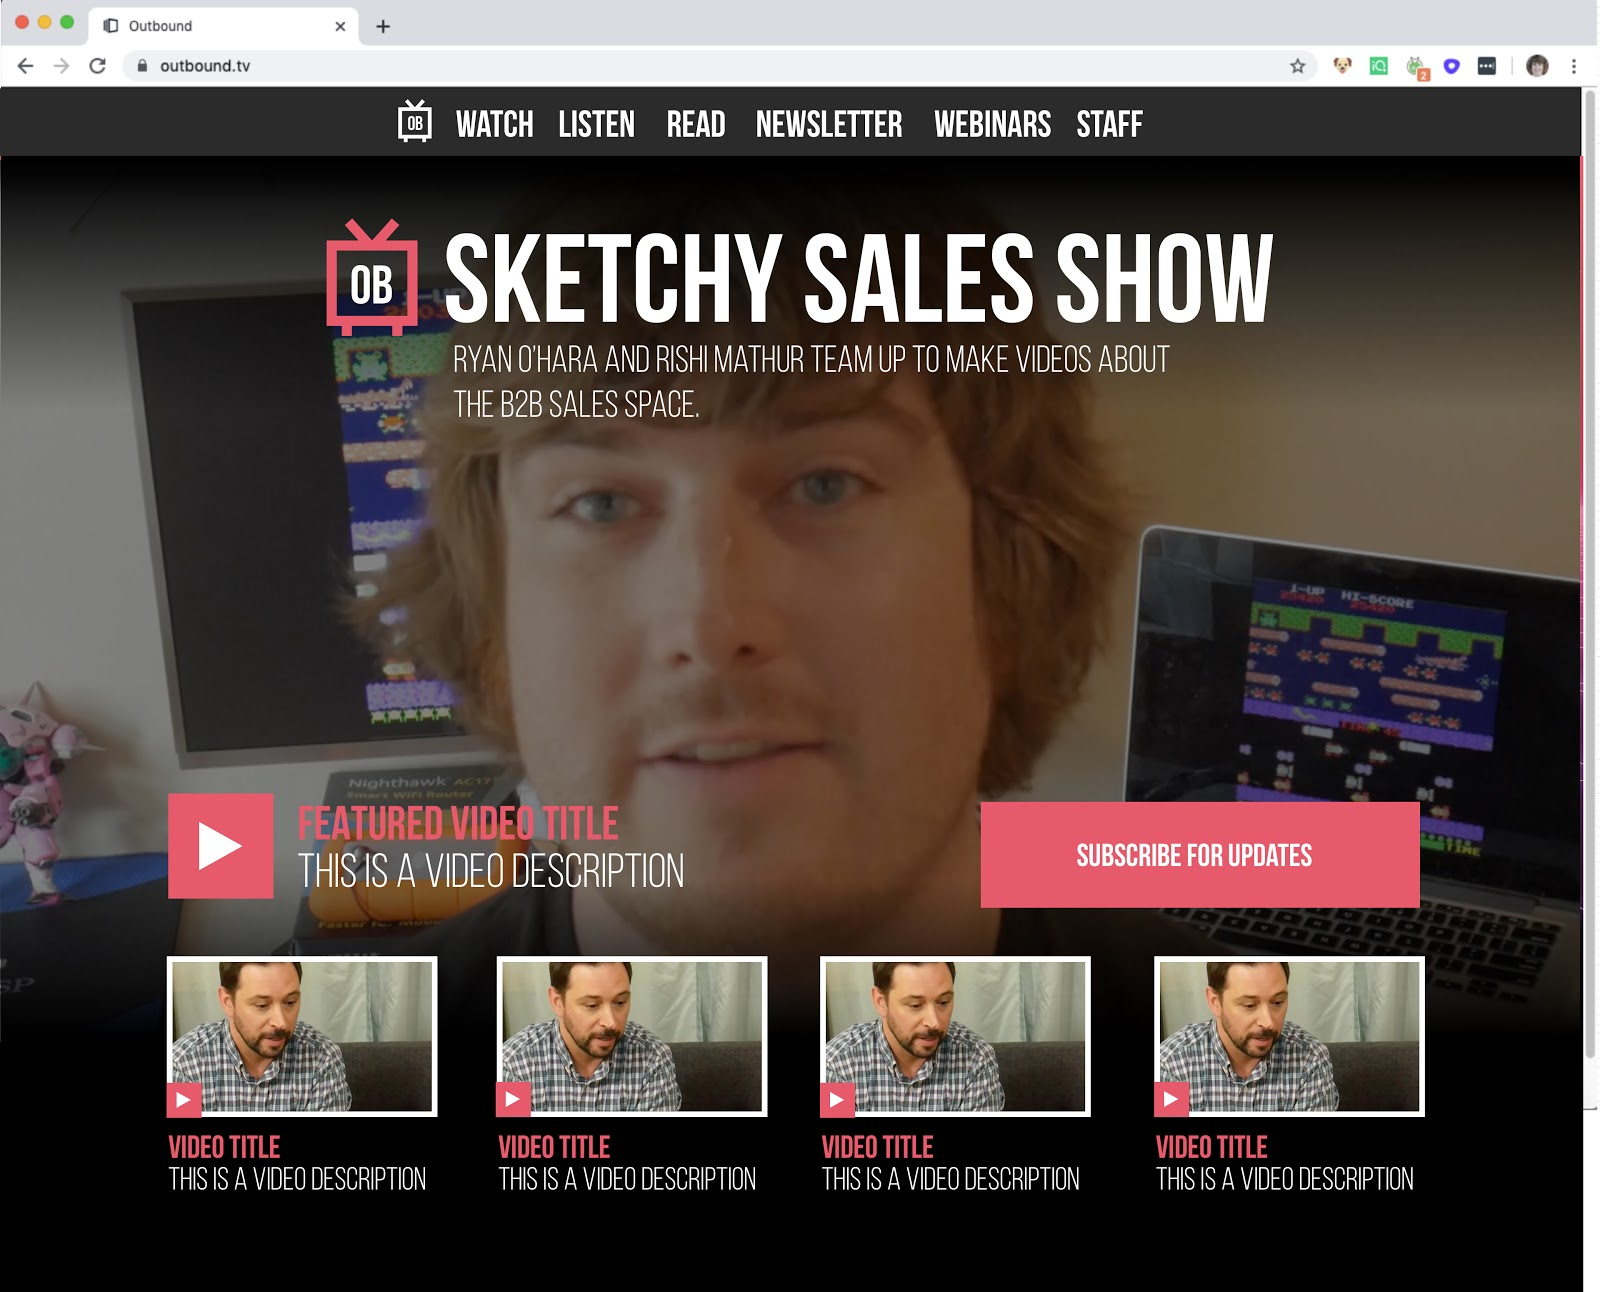 The sketchy sales show